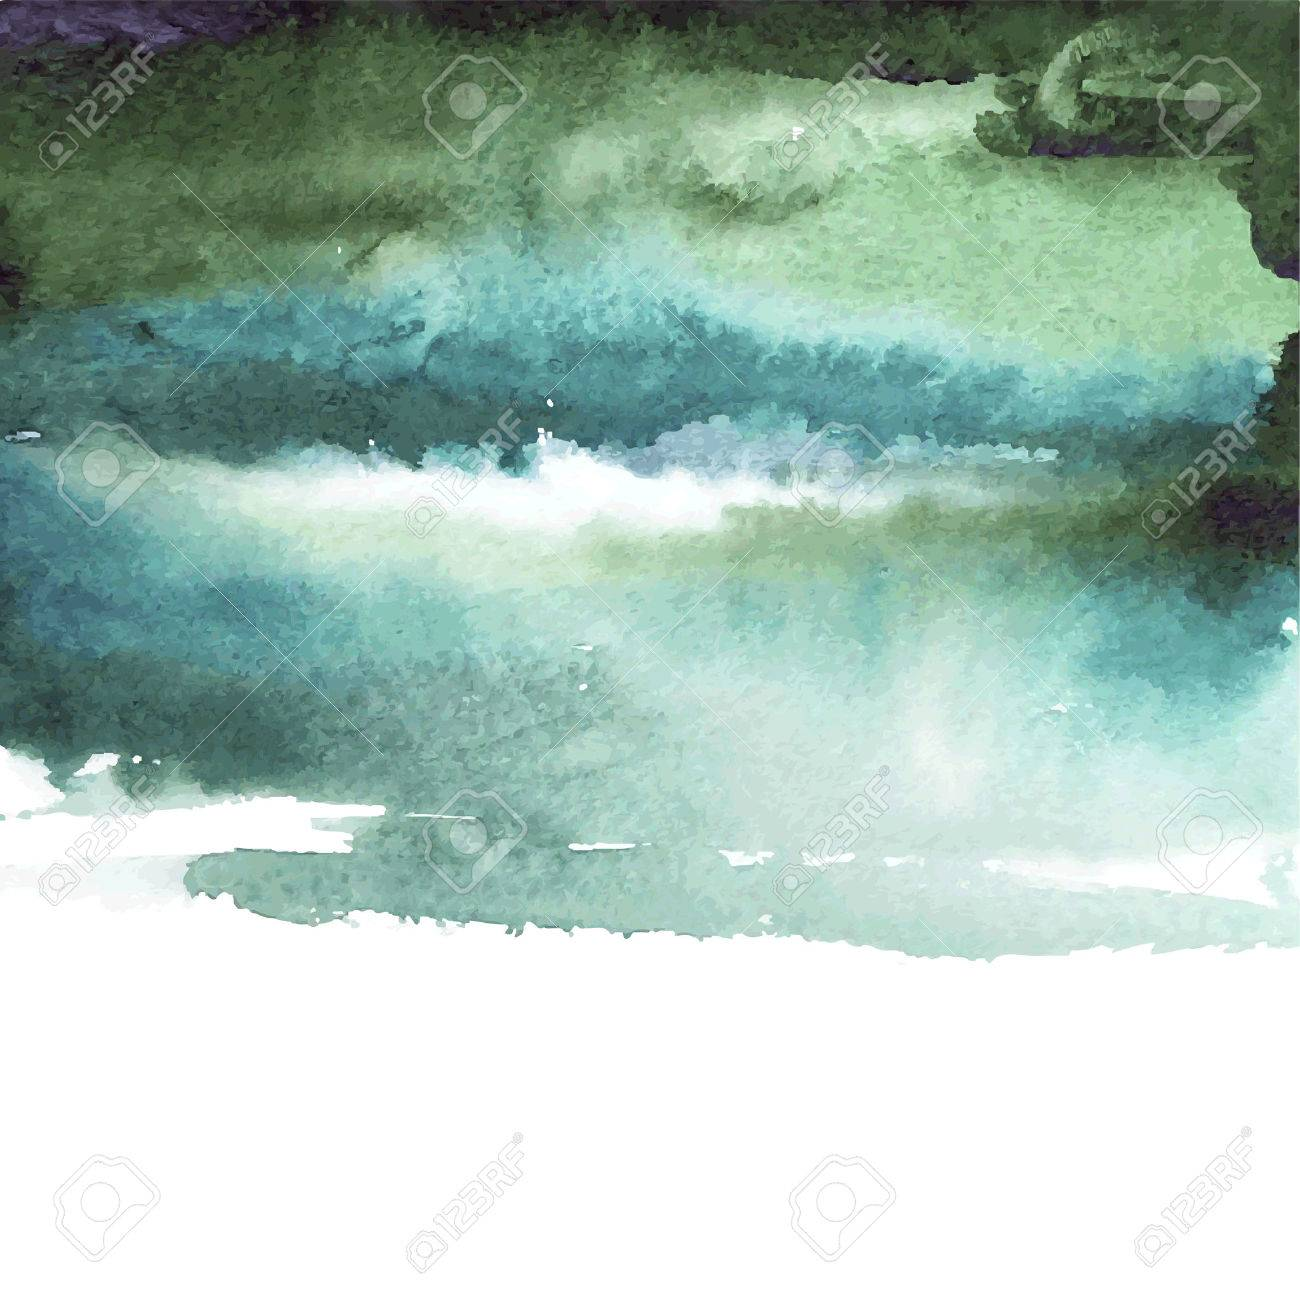 Vector abstract watercolor banner. Green, blue background. Design template with place for your text. Can be used for banners for sale, web pages, printing, invitations, cards, etc. - 41501518